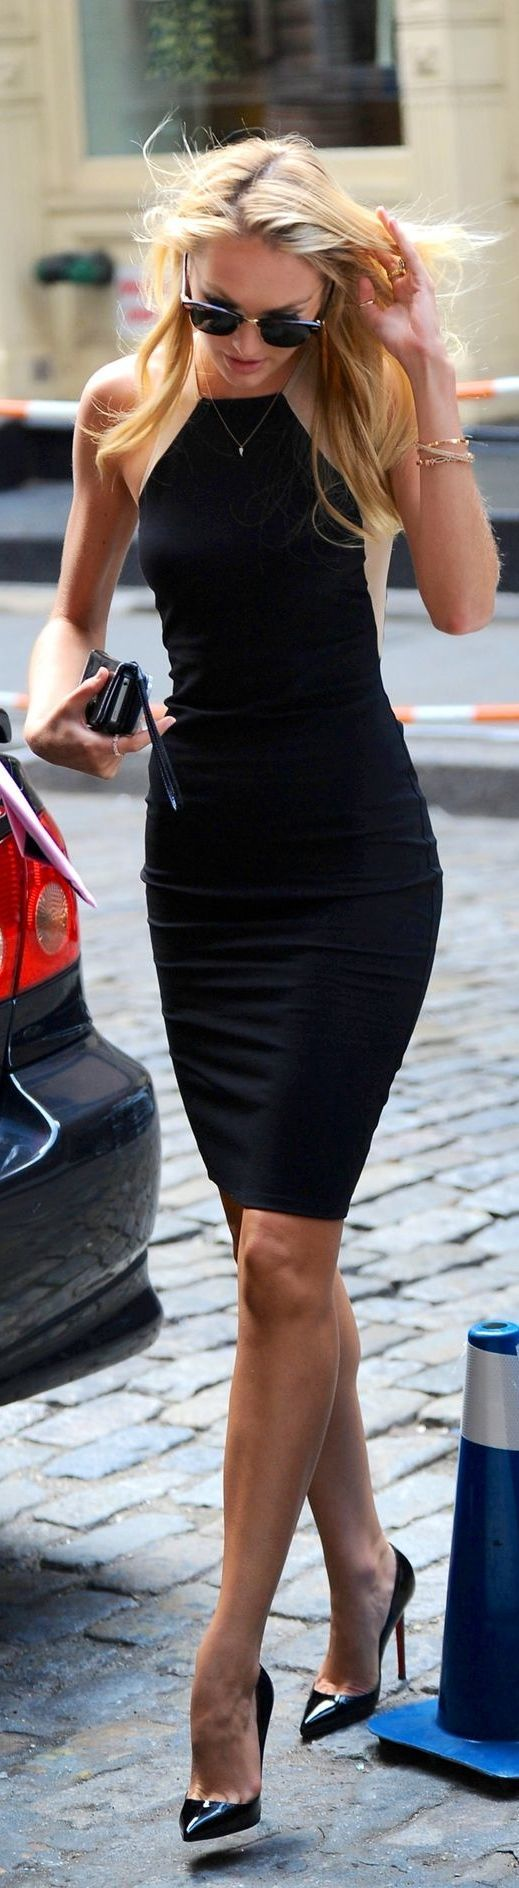 black dress with purse and high heels Outfit<3